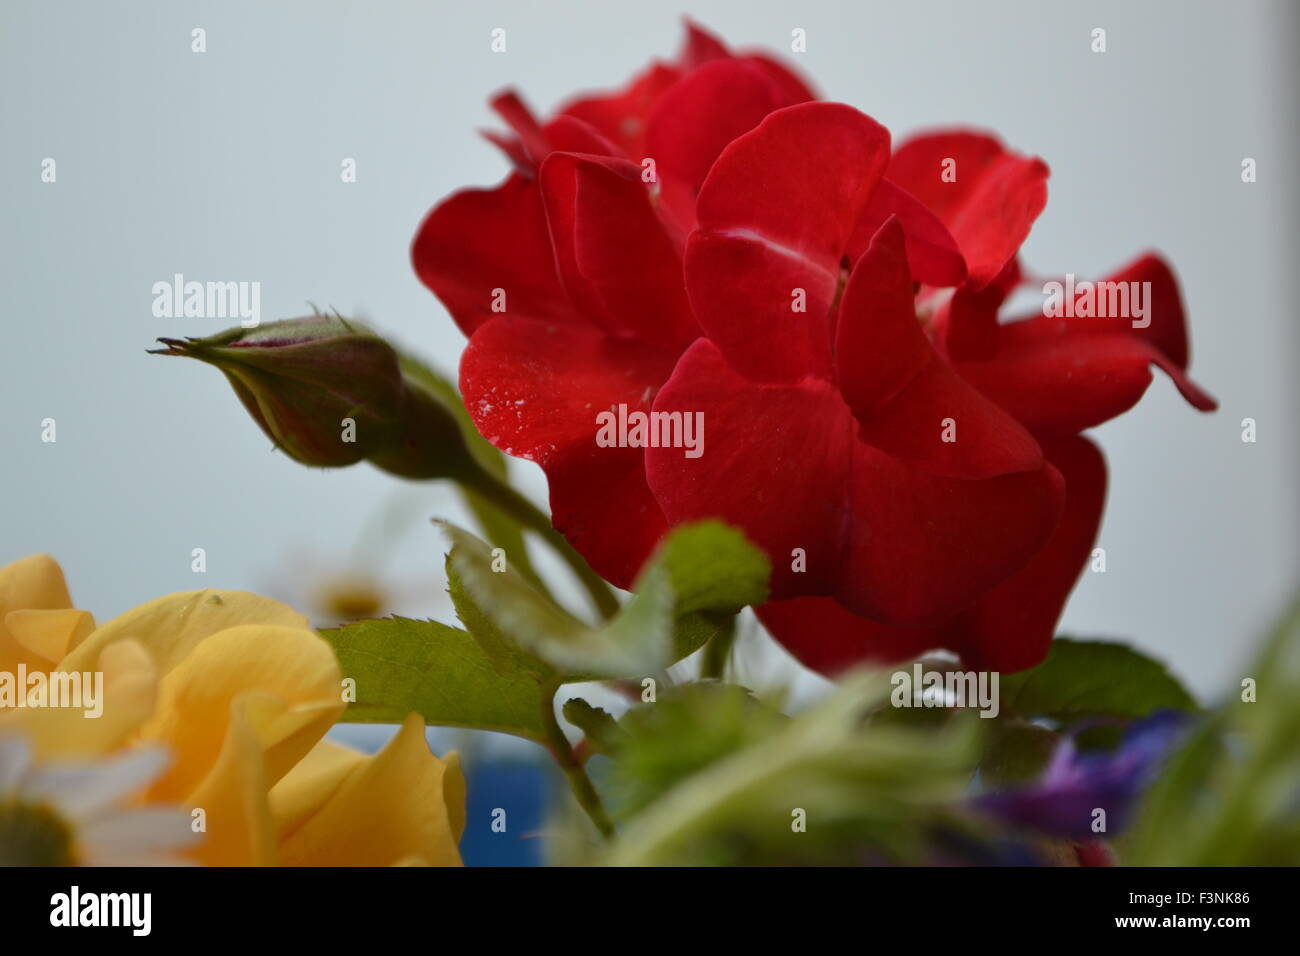 Red roses,roses,flowers,flower colors Stock Photo: 88371926 - Alamy